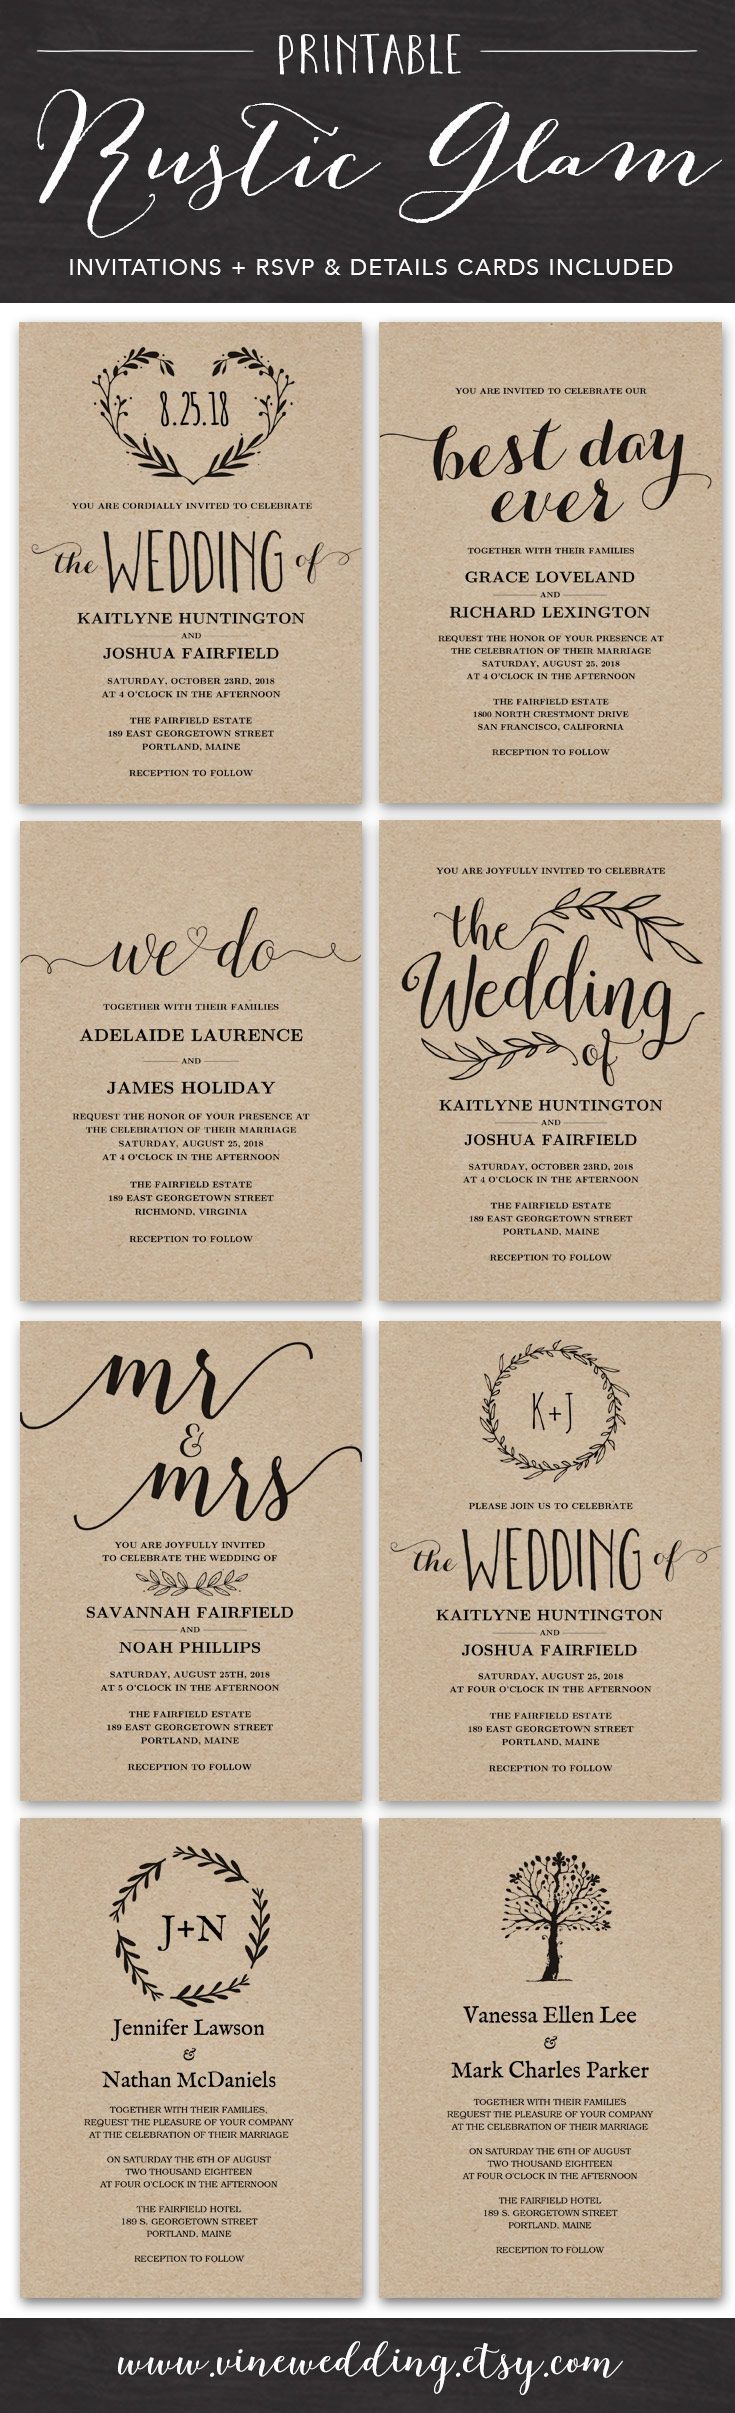 second wedding invitations wording%0A Beautiful rustic wedding invitations  Editable instant download templates  you can print as many as you need   wedding  invitations  vinewedding    Pinterest